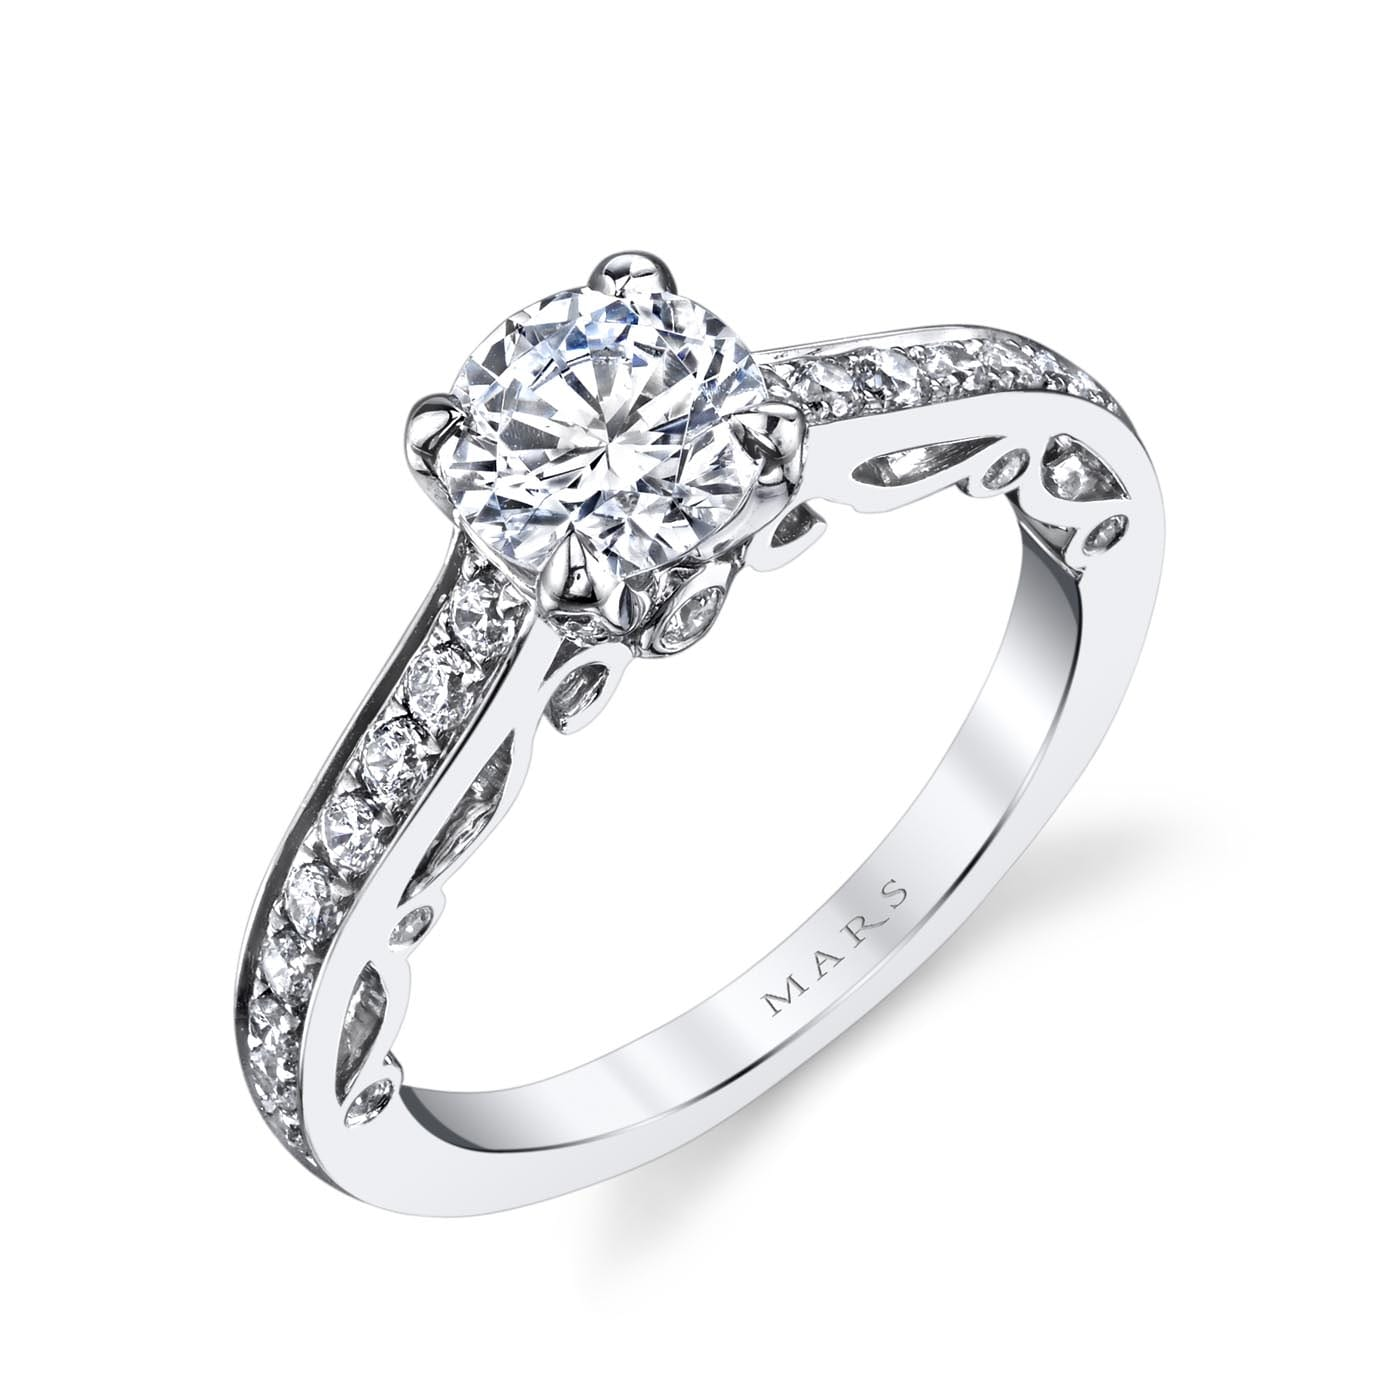 Classic Engagement RingStyle #: MARS 25736